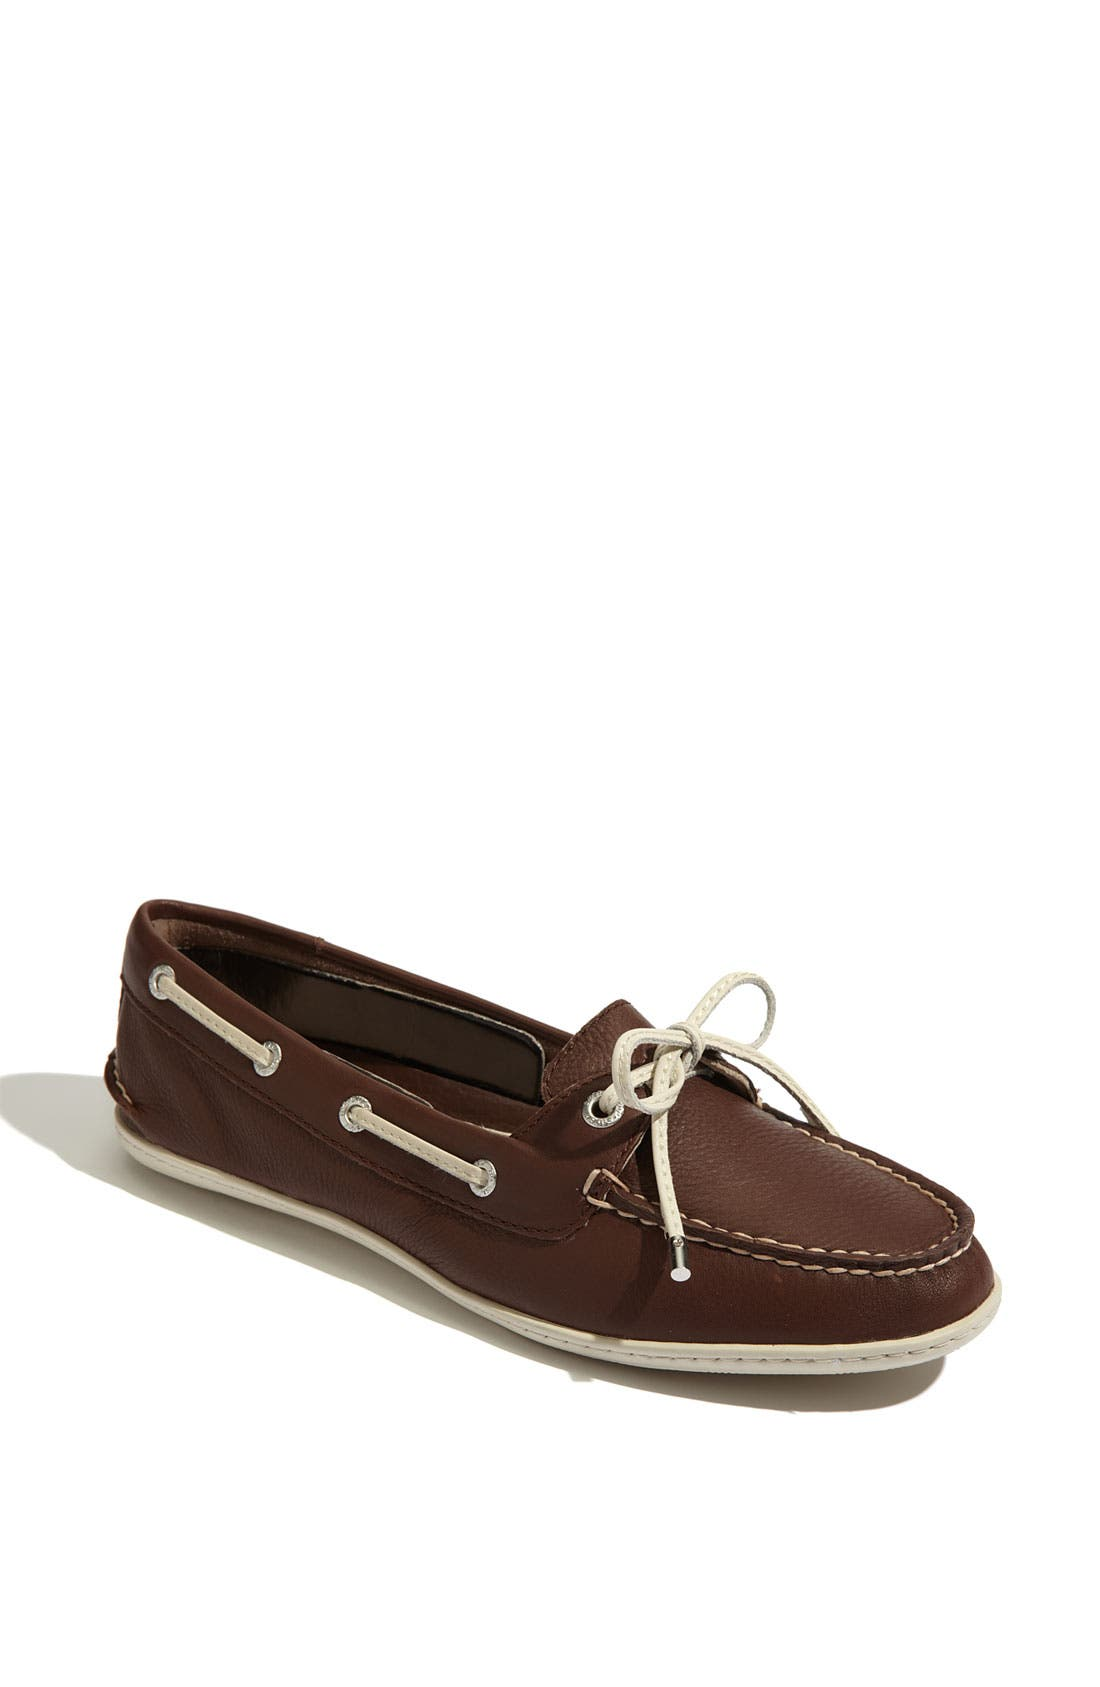 Alternate Image 1 Selected - Sperry Top-Sider® 'Montauk' Leather Boat Shoe